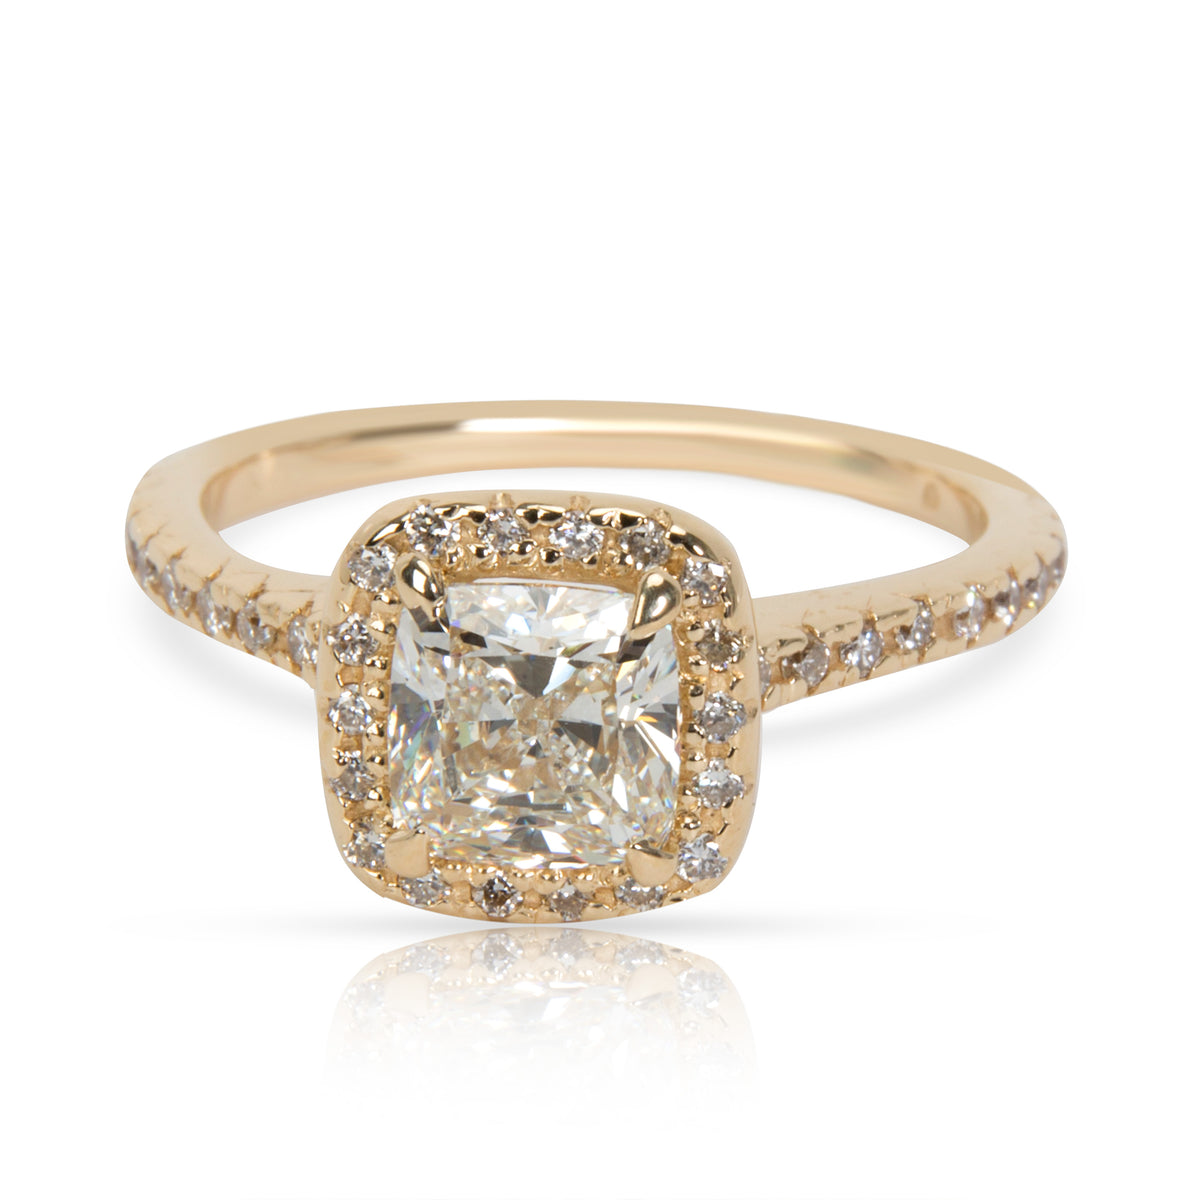 Halo Diamond Engagement Ring in 14K Yellow Gold I VS2 1.22 CTW